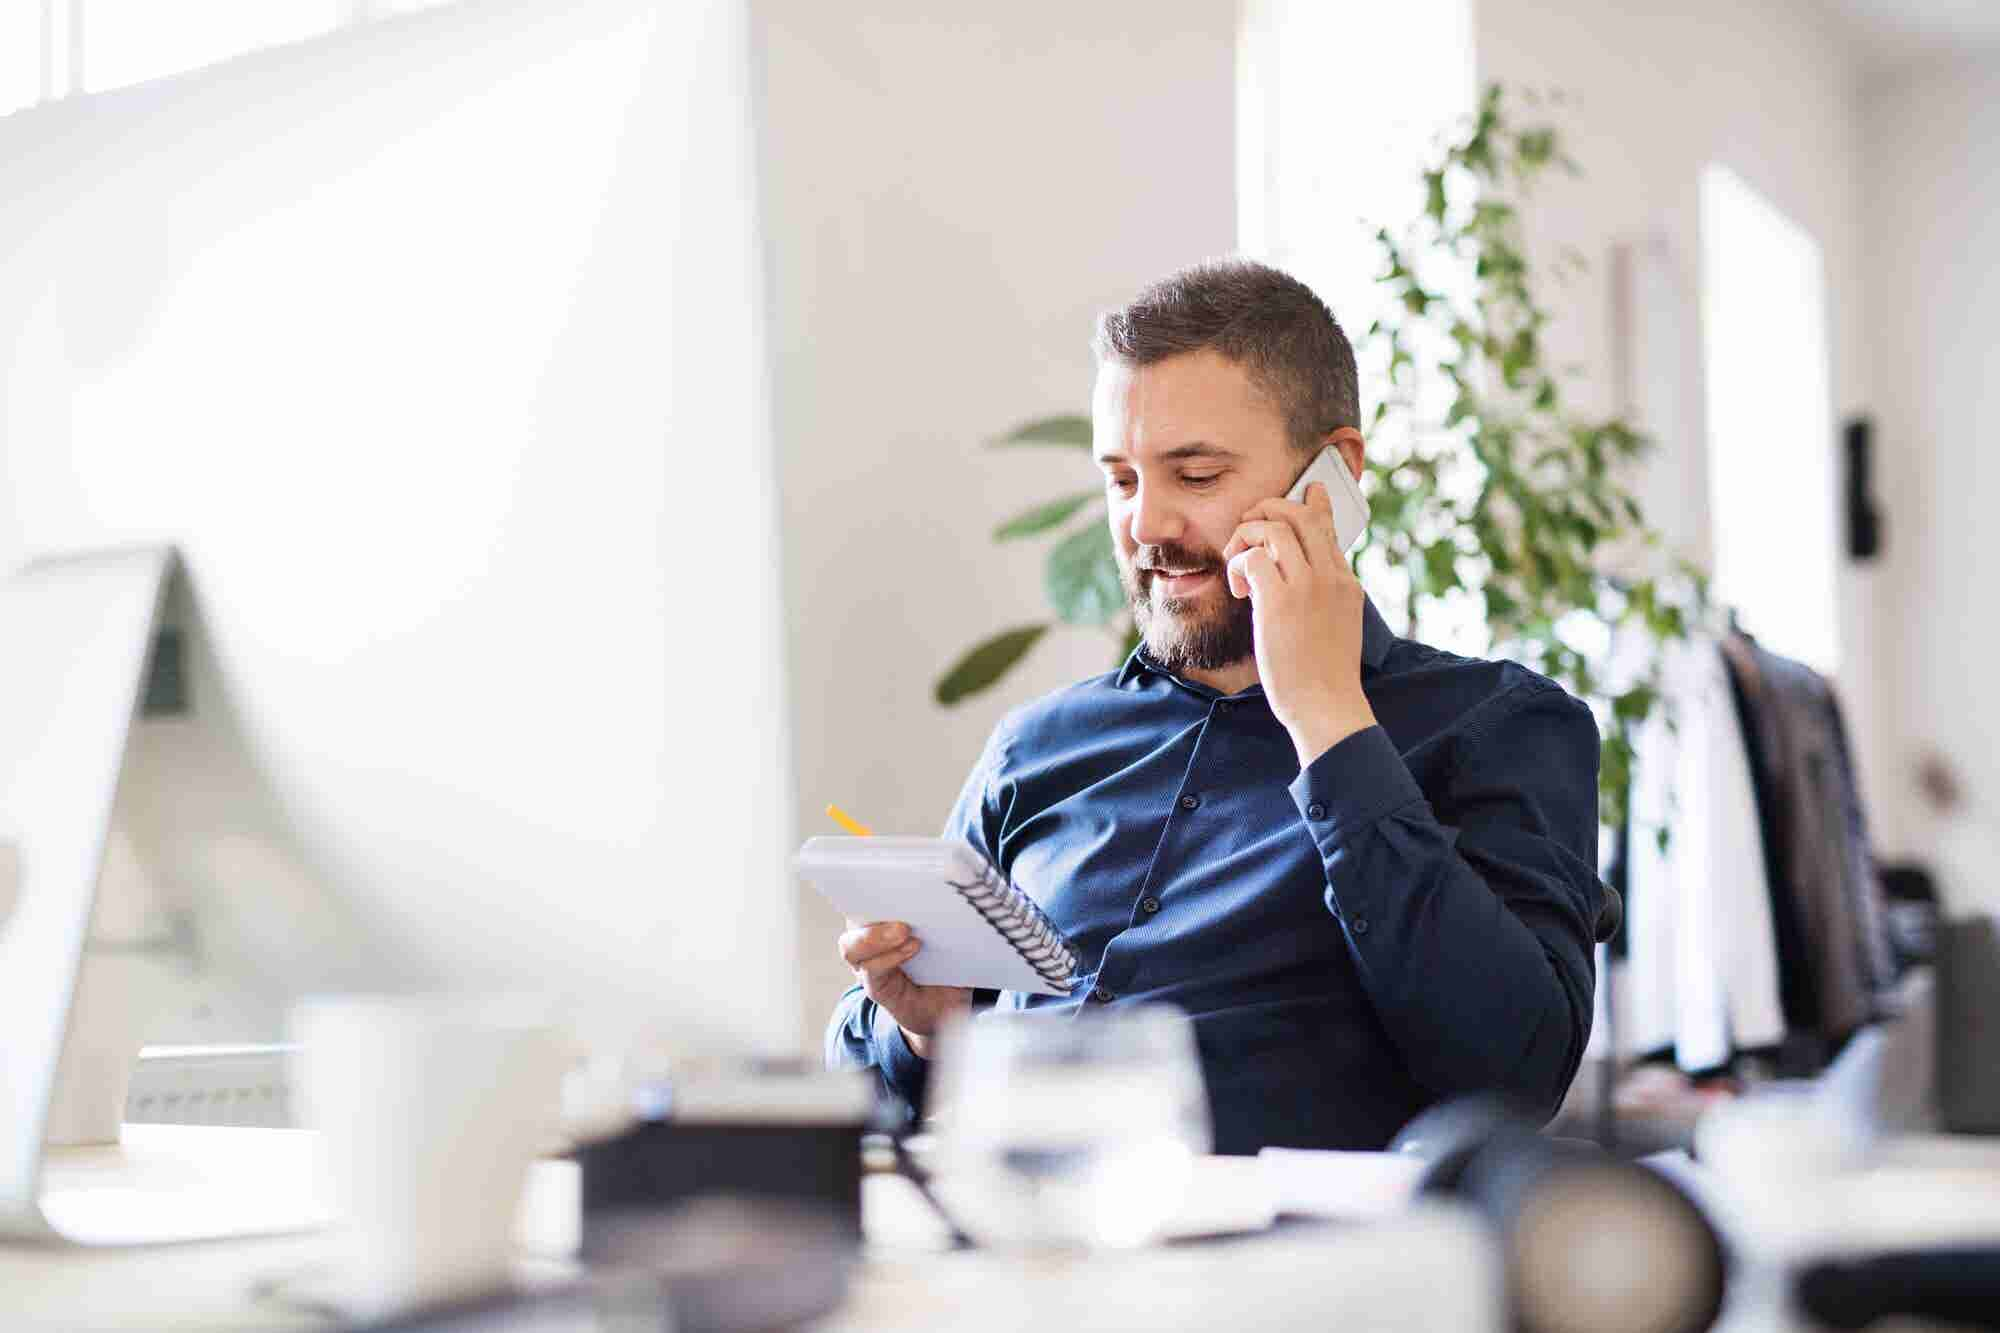 Top 5 Counterproductive Questions to Never Ask on a Cold Call